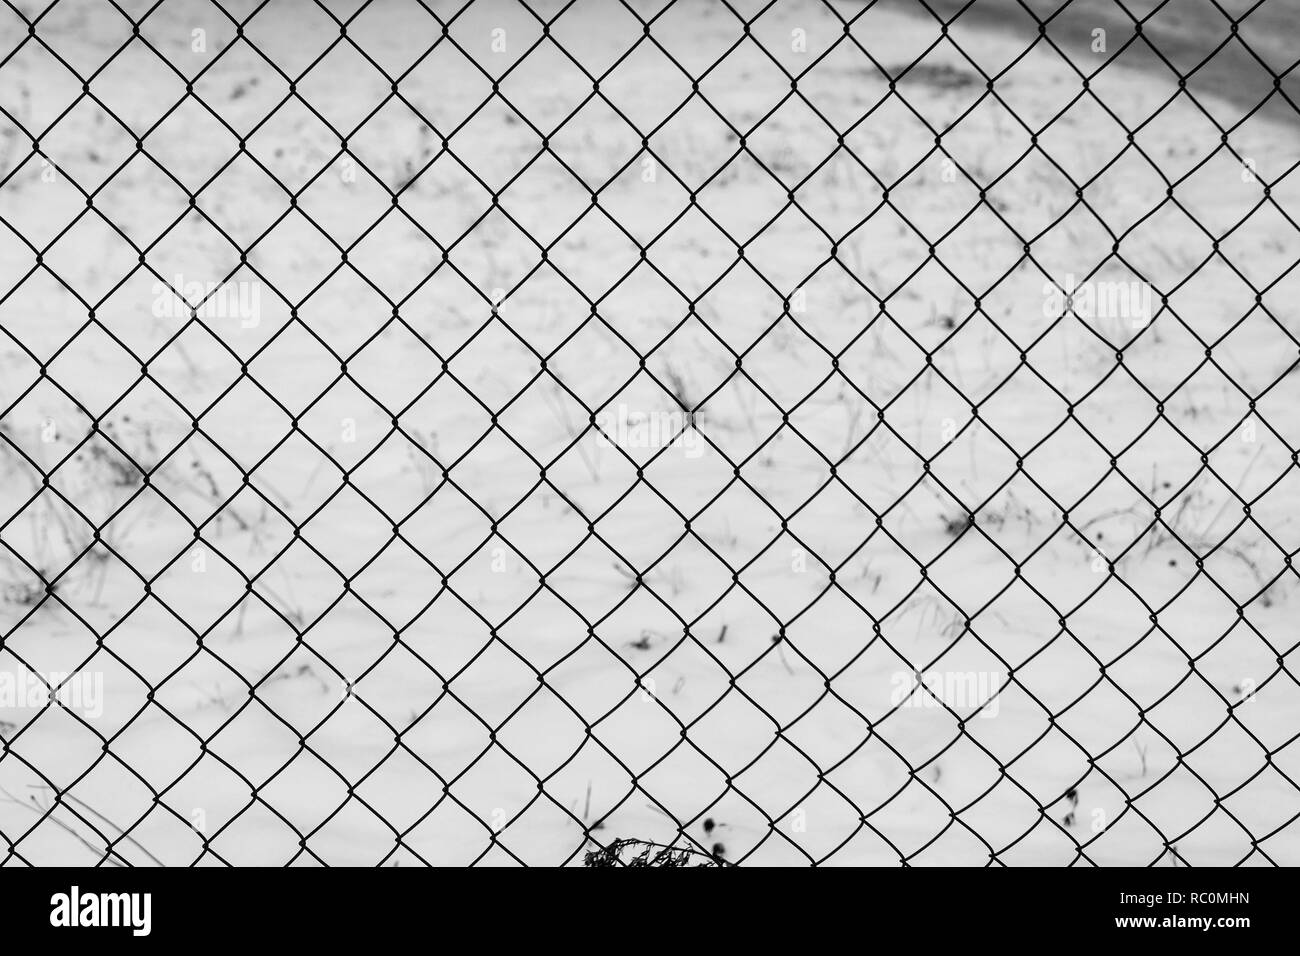 Wire fence in the snow. Fence background. Metallic net with snow. Metal net in winter covered with snow. Wire fence closeup. Steel wire mesh fence vin - Stock Image